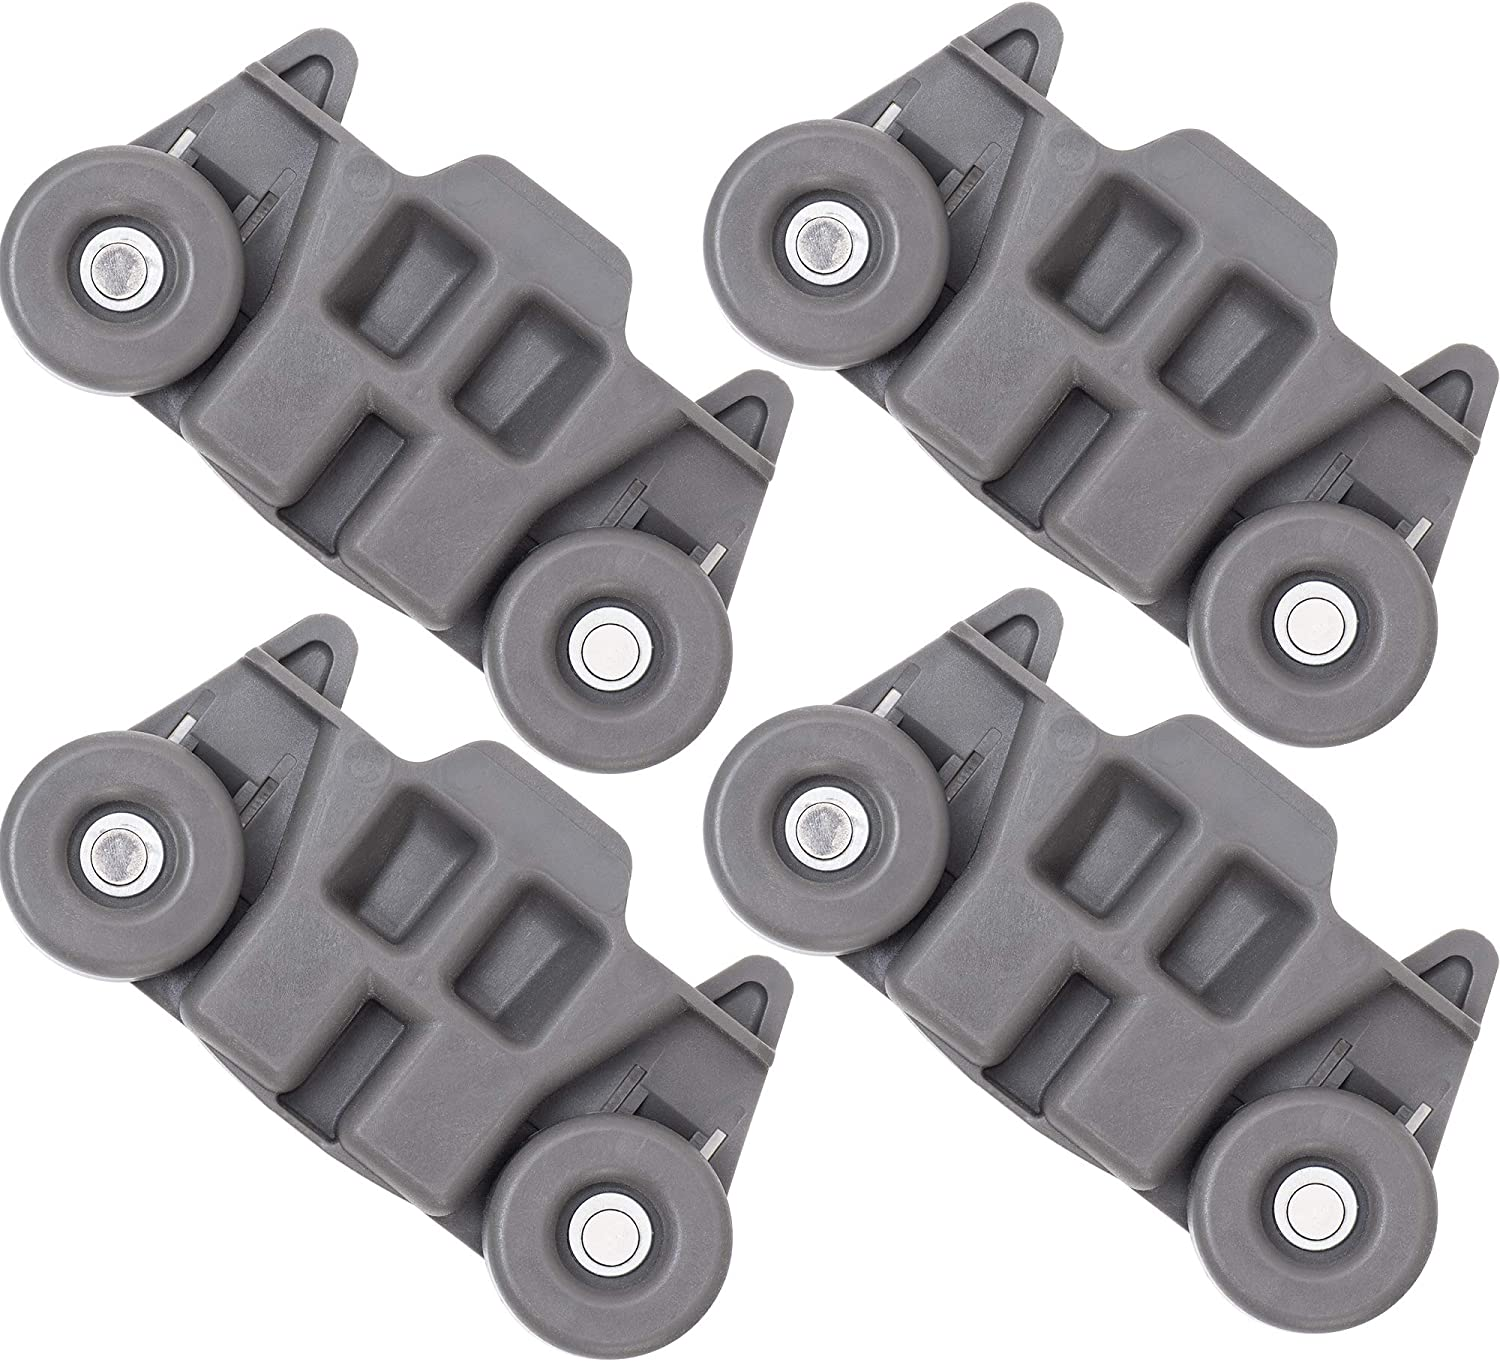 W10195416V W10195416 Dishwasher Wheels Lower Dish Rack Wheel with Steel Screws by AMI W10195416V Perfect Replacement for Whirlpool /& Kenmore Dishwasher Replaces W10195416VP 4PCS